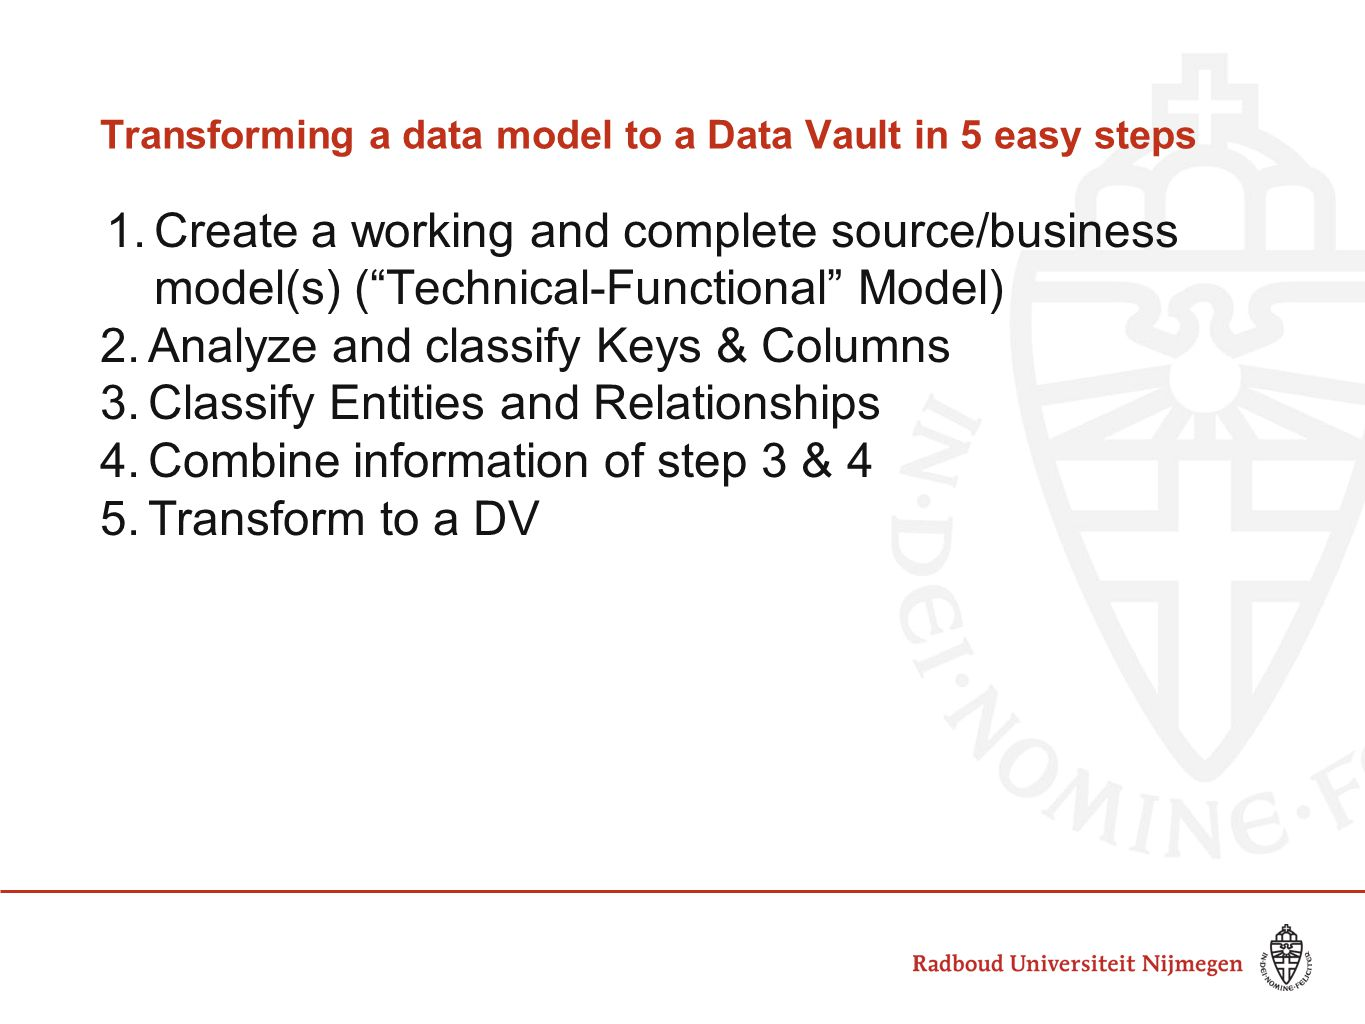 Transforming a data model to a Data Vault in 5 easy steps 1.Create a working and complete source/business model(s) ( Technical-Functional Model) 2.Analyze and classify Keys & Columns 3.Classify Entities and Relationships 4.Combine information of step 3 & 4 5.Transform to a DV